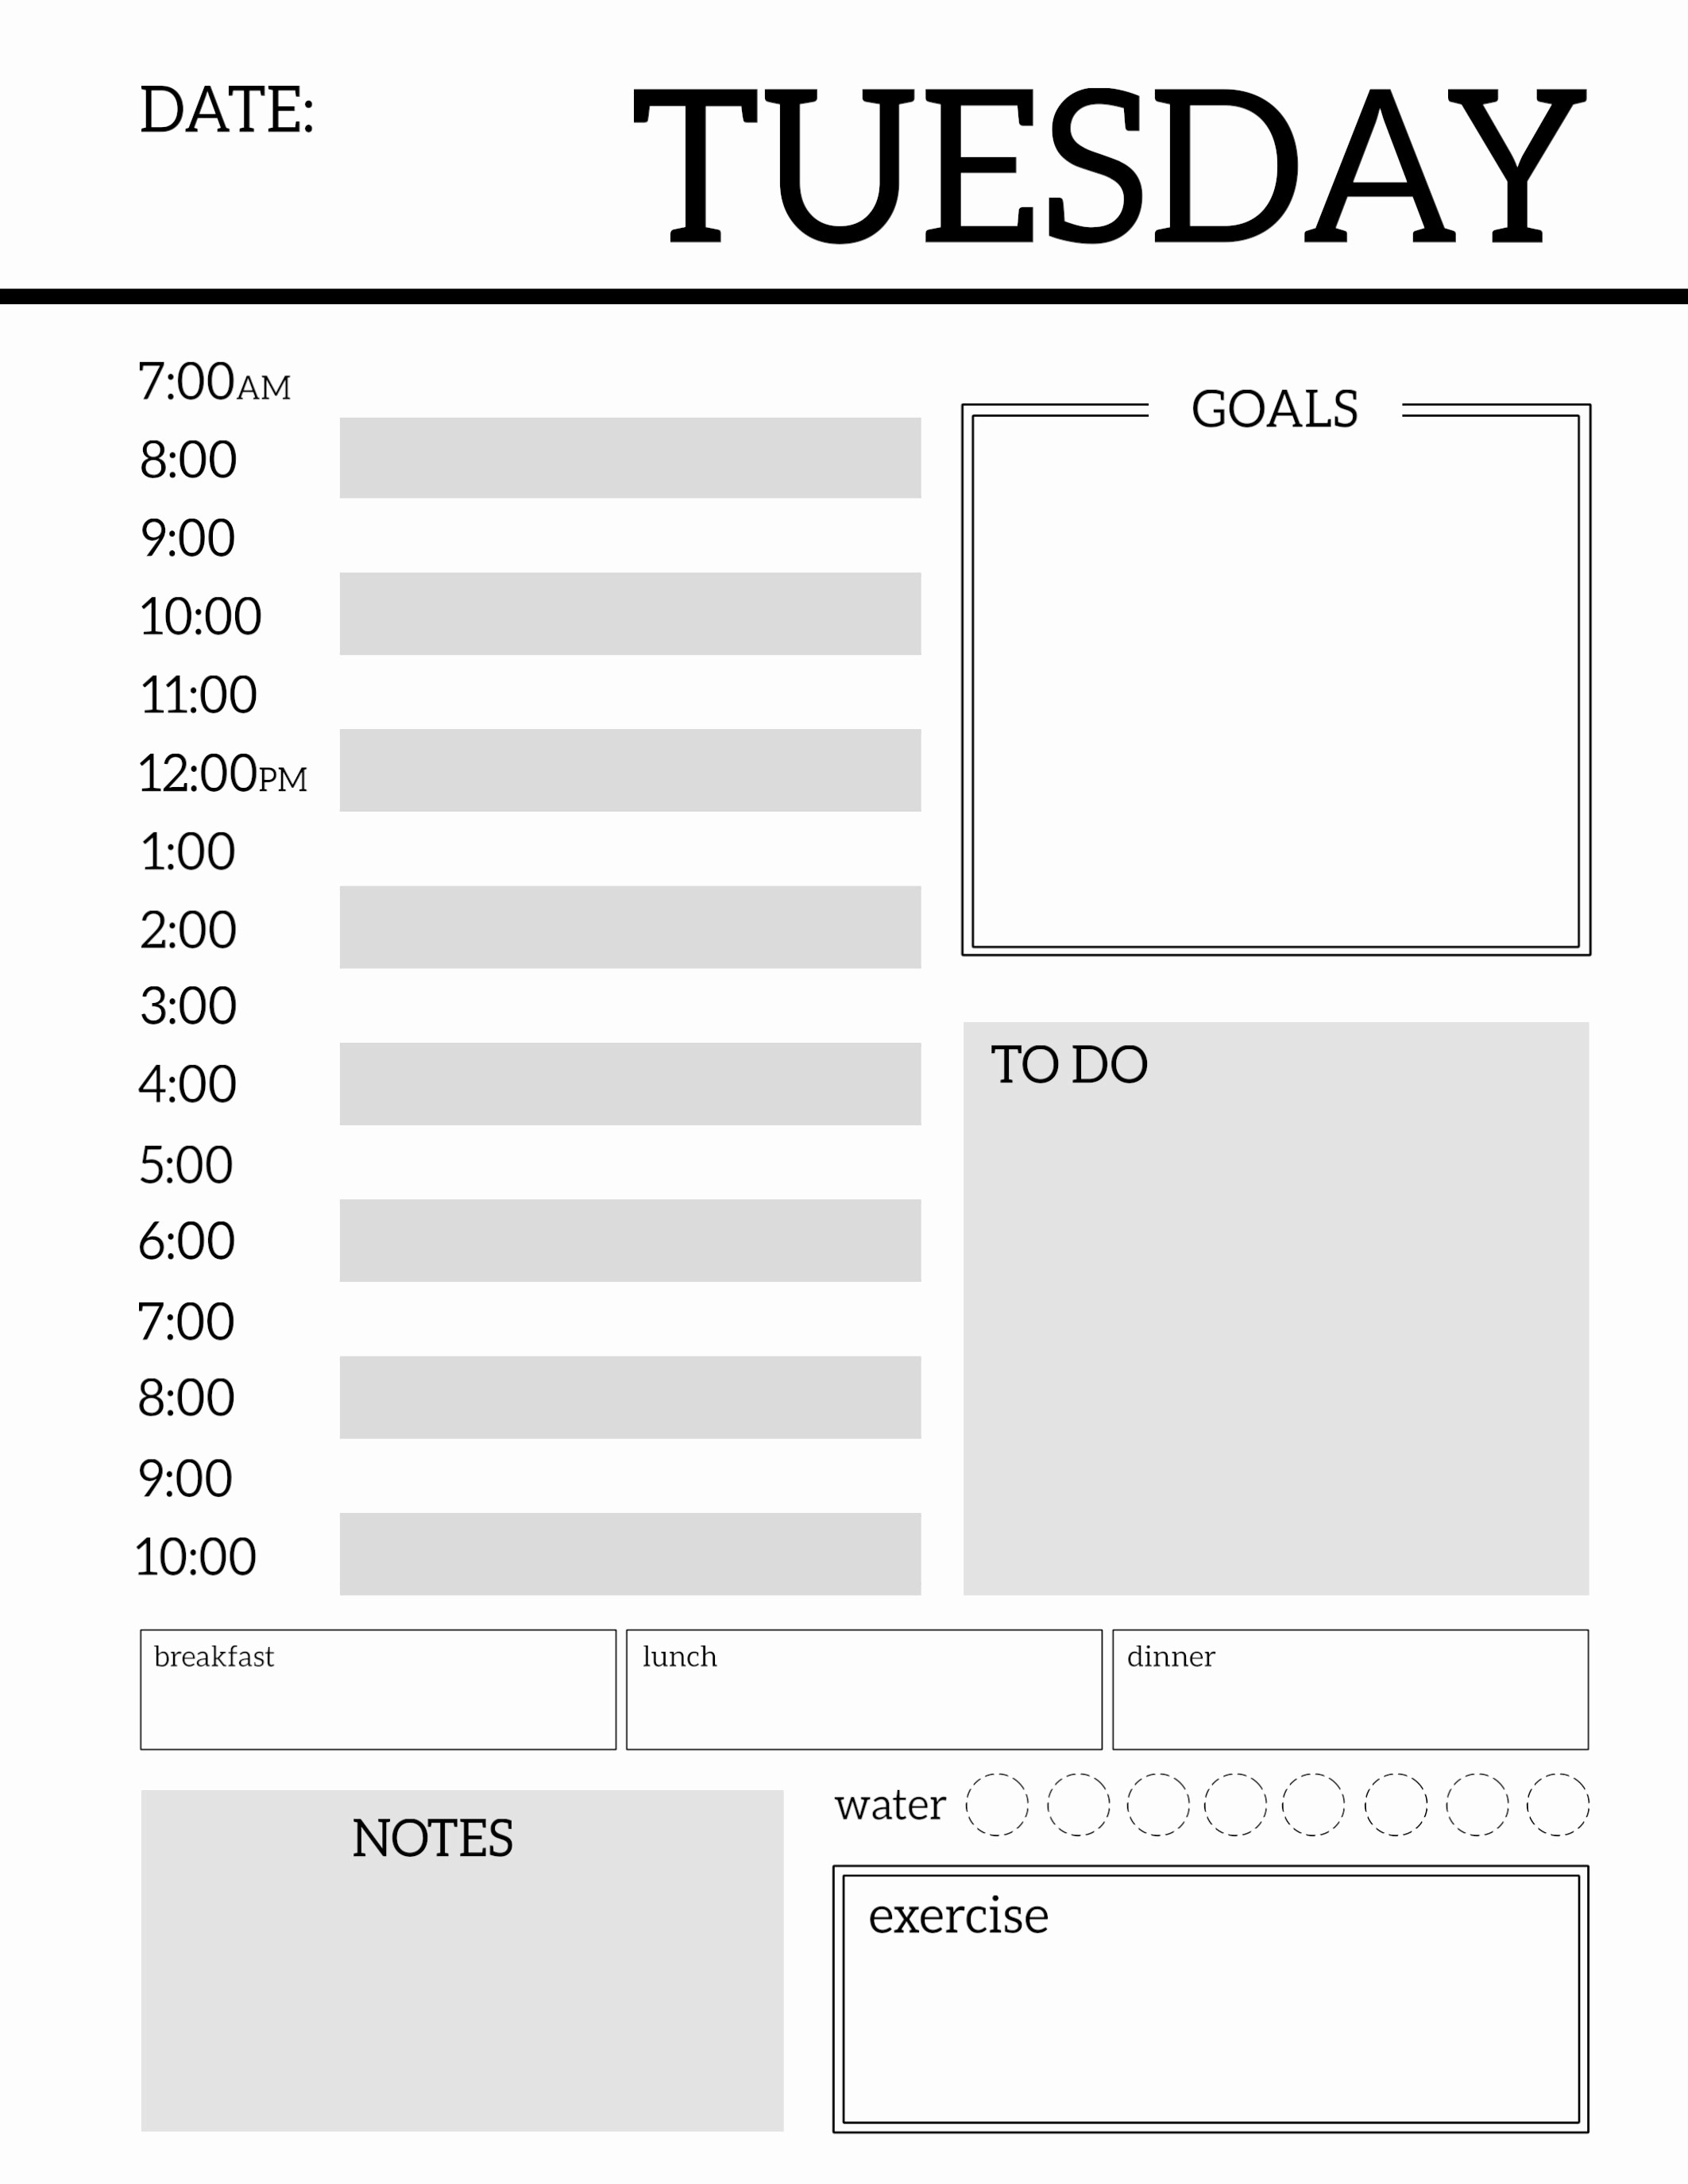 To Do List organizer Template Beautiful Daily Planner Printable Template Sheets Paper Trail Design